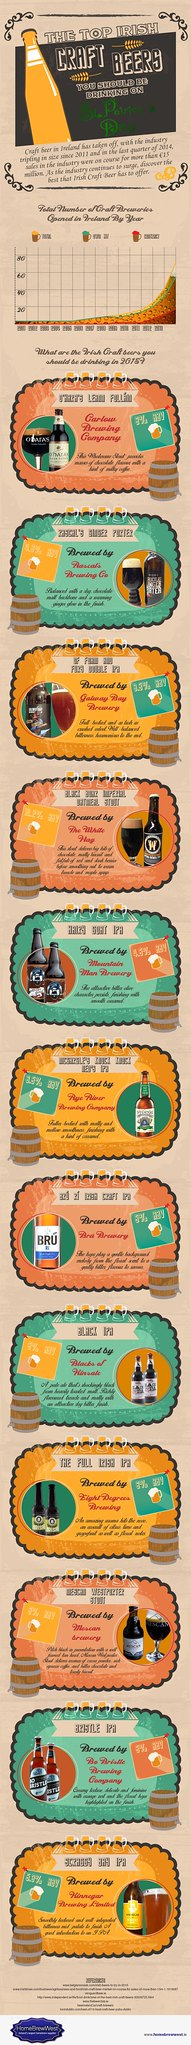 The Top Irish Craft Beers of 2015 - Infographic from HomeBrewWest